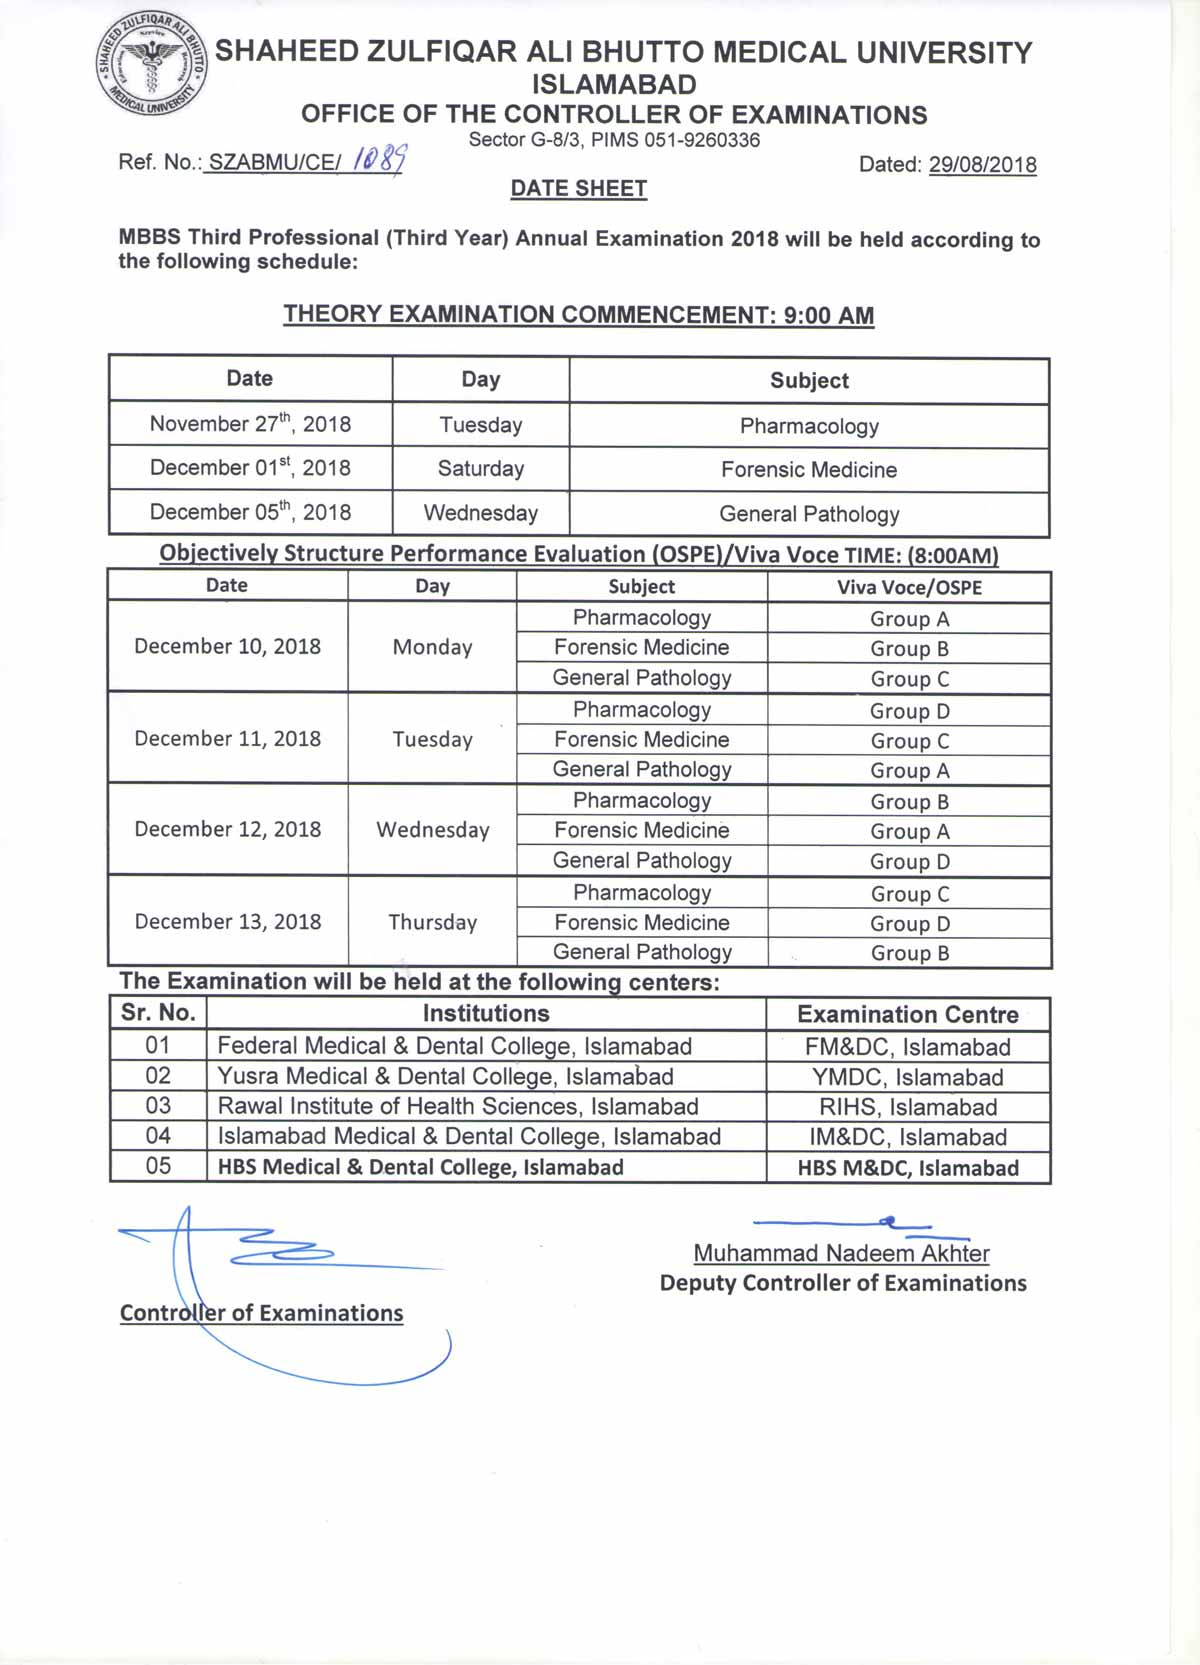 Date Sheets - MBBS All Professional Annual Examination, 2018